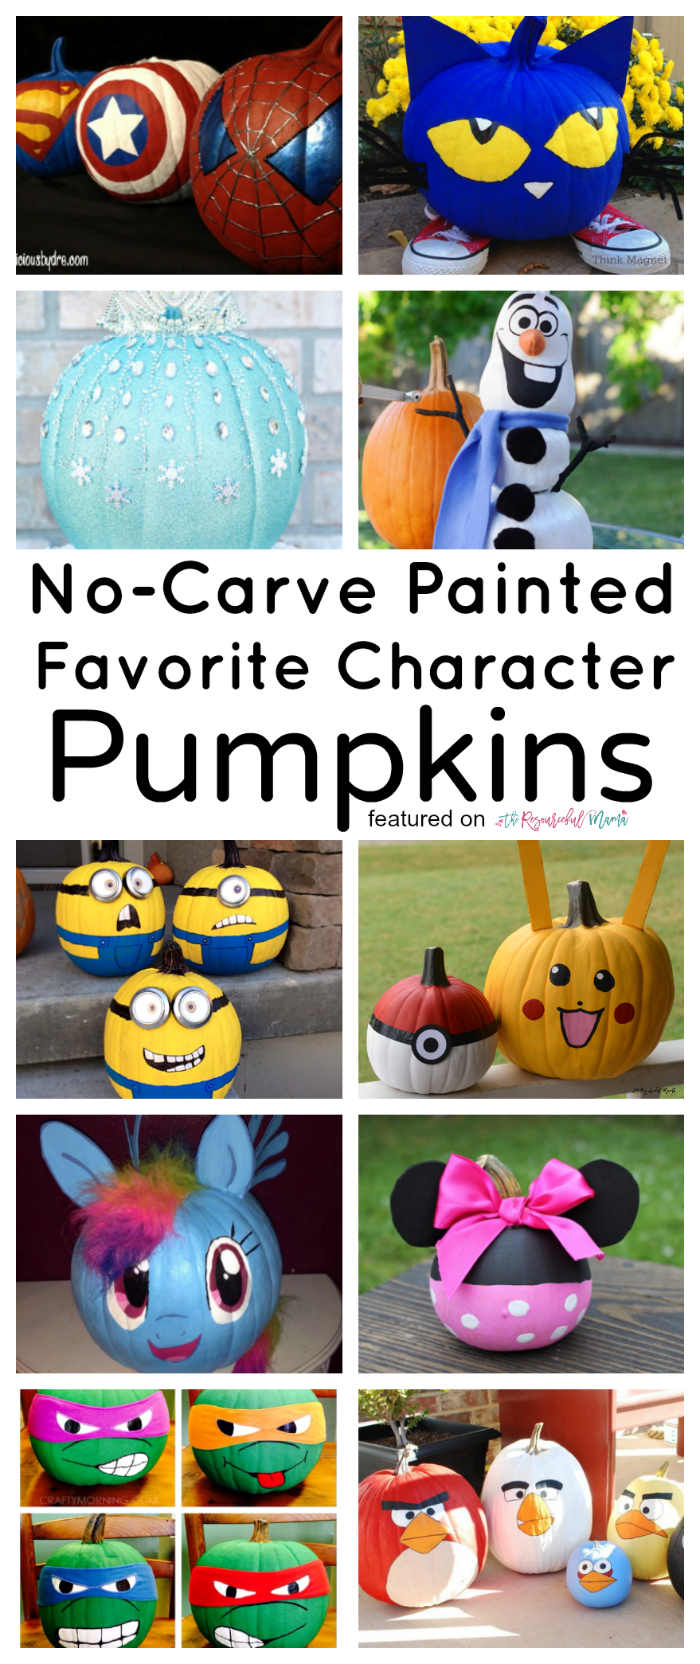 Turn your kids' favorite characters into no carve painted character pumpkins for Halloween.